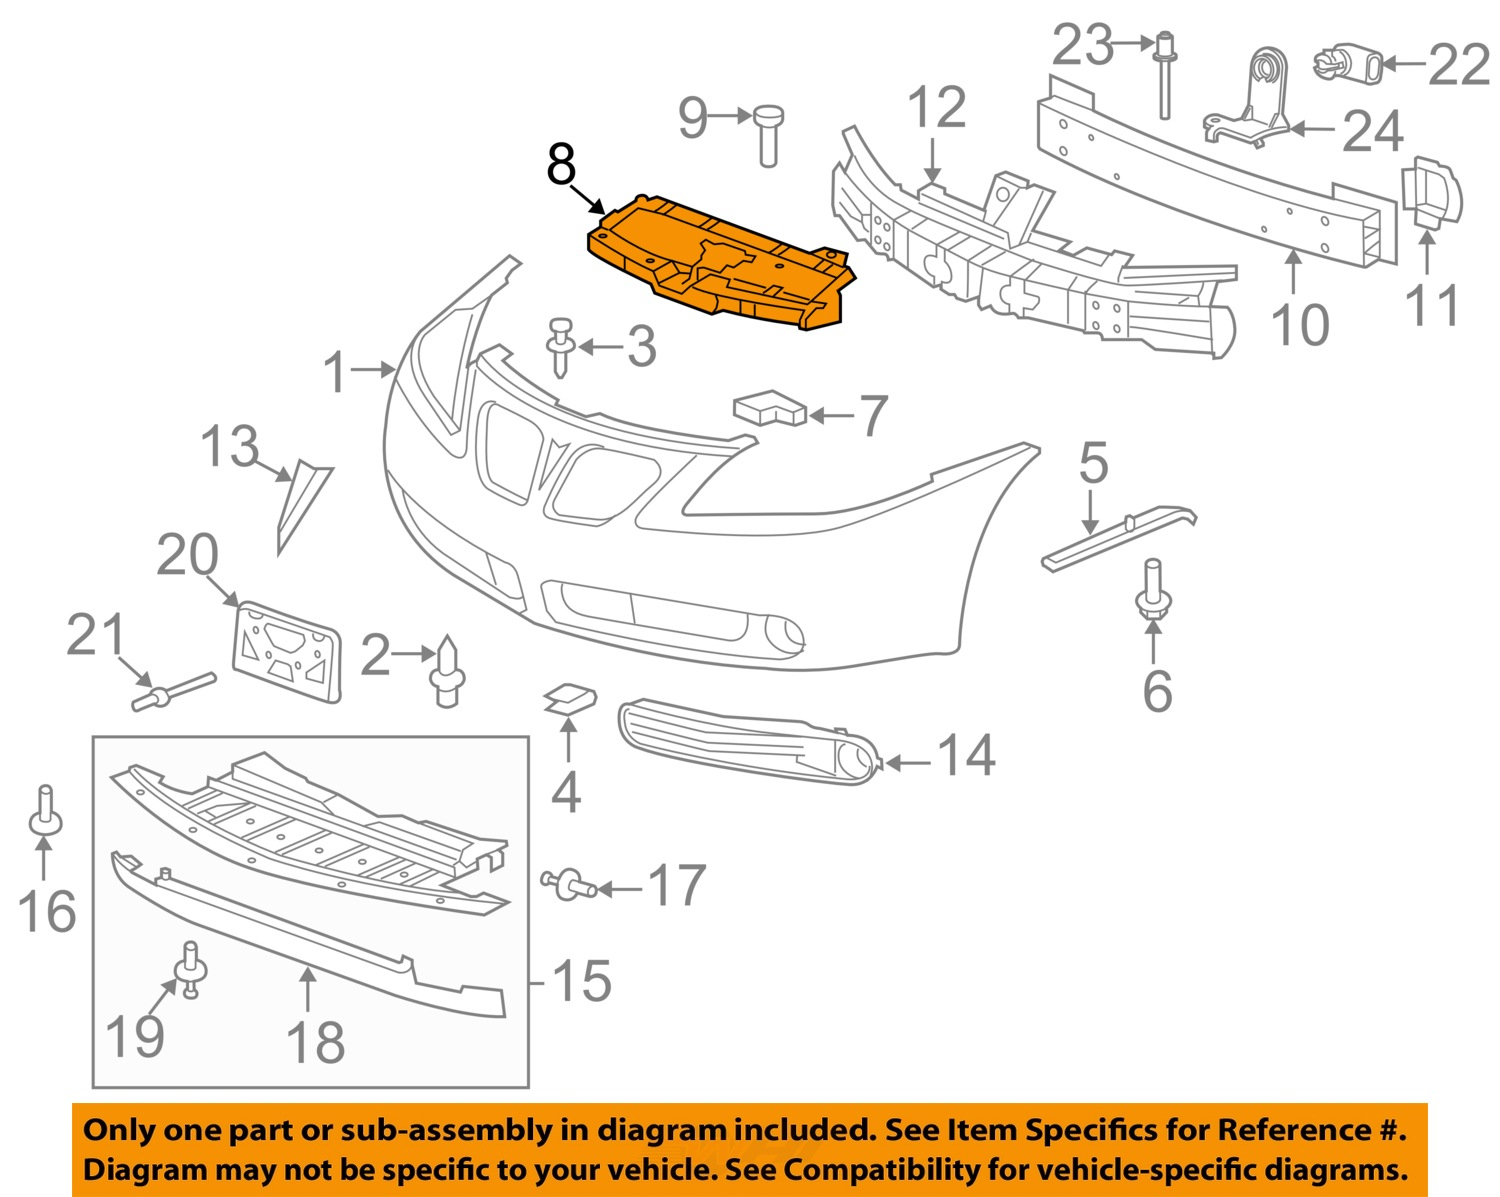 FQ05010_8Full pontiac gm oem 05 10 g6 front bumper upper support bracket pontiac g6 parts diagram at bakdesigns.co